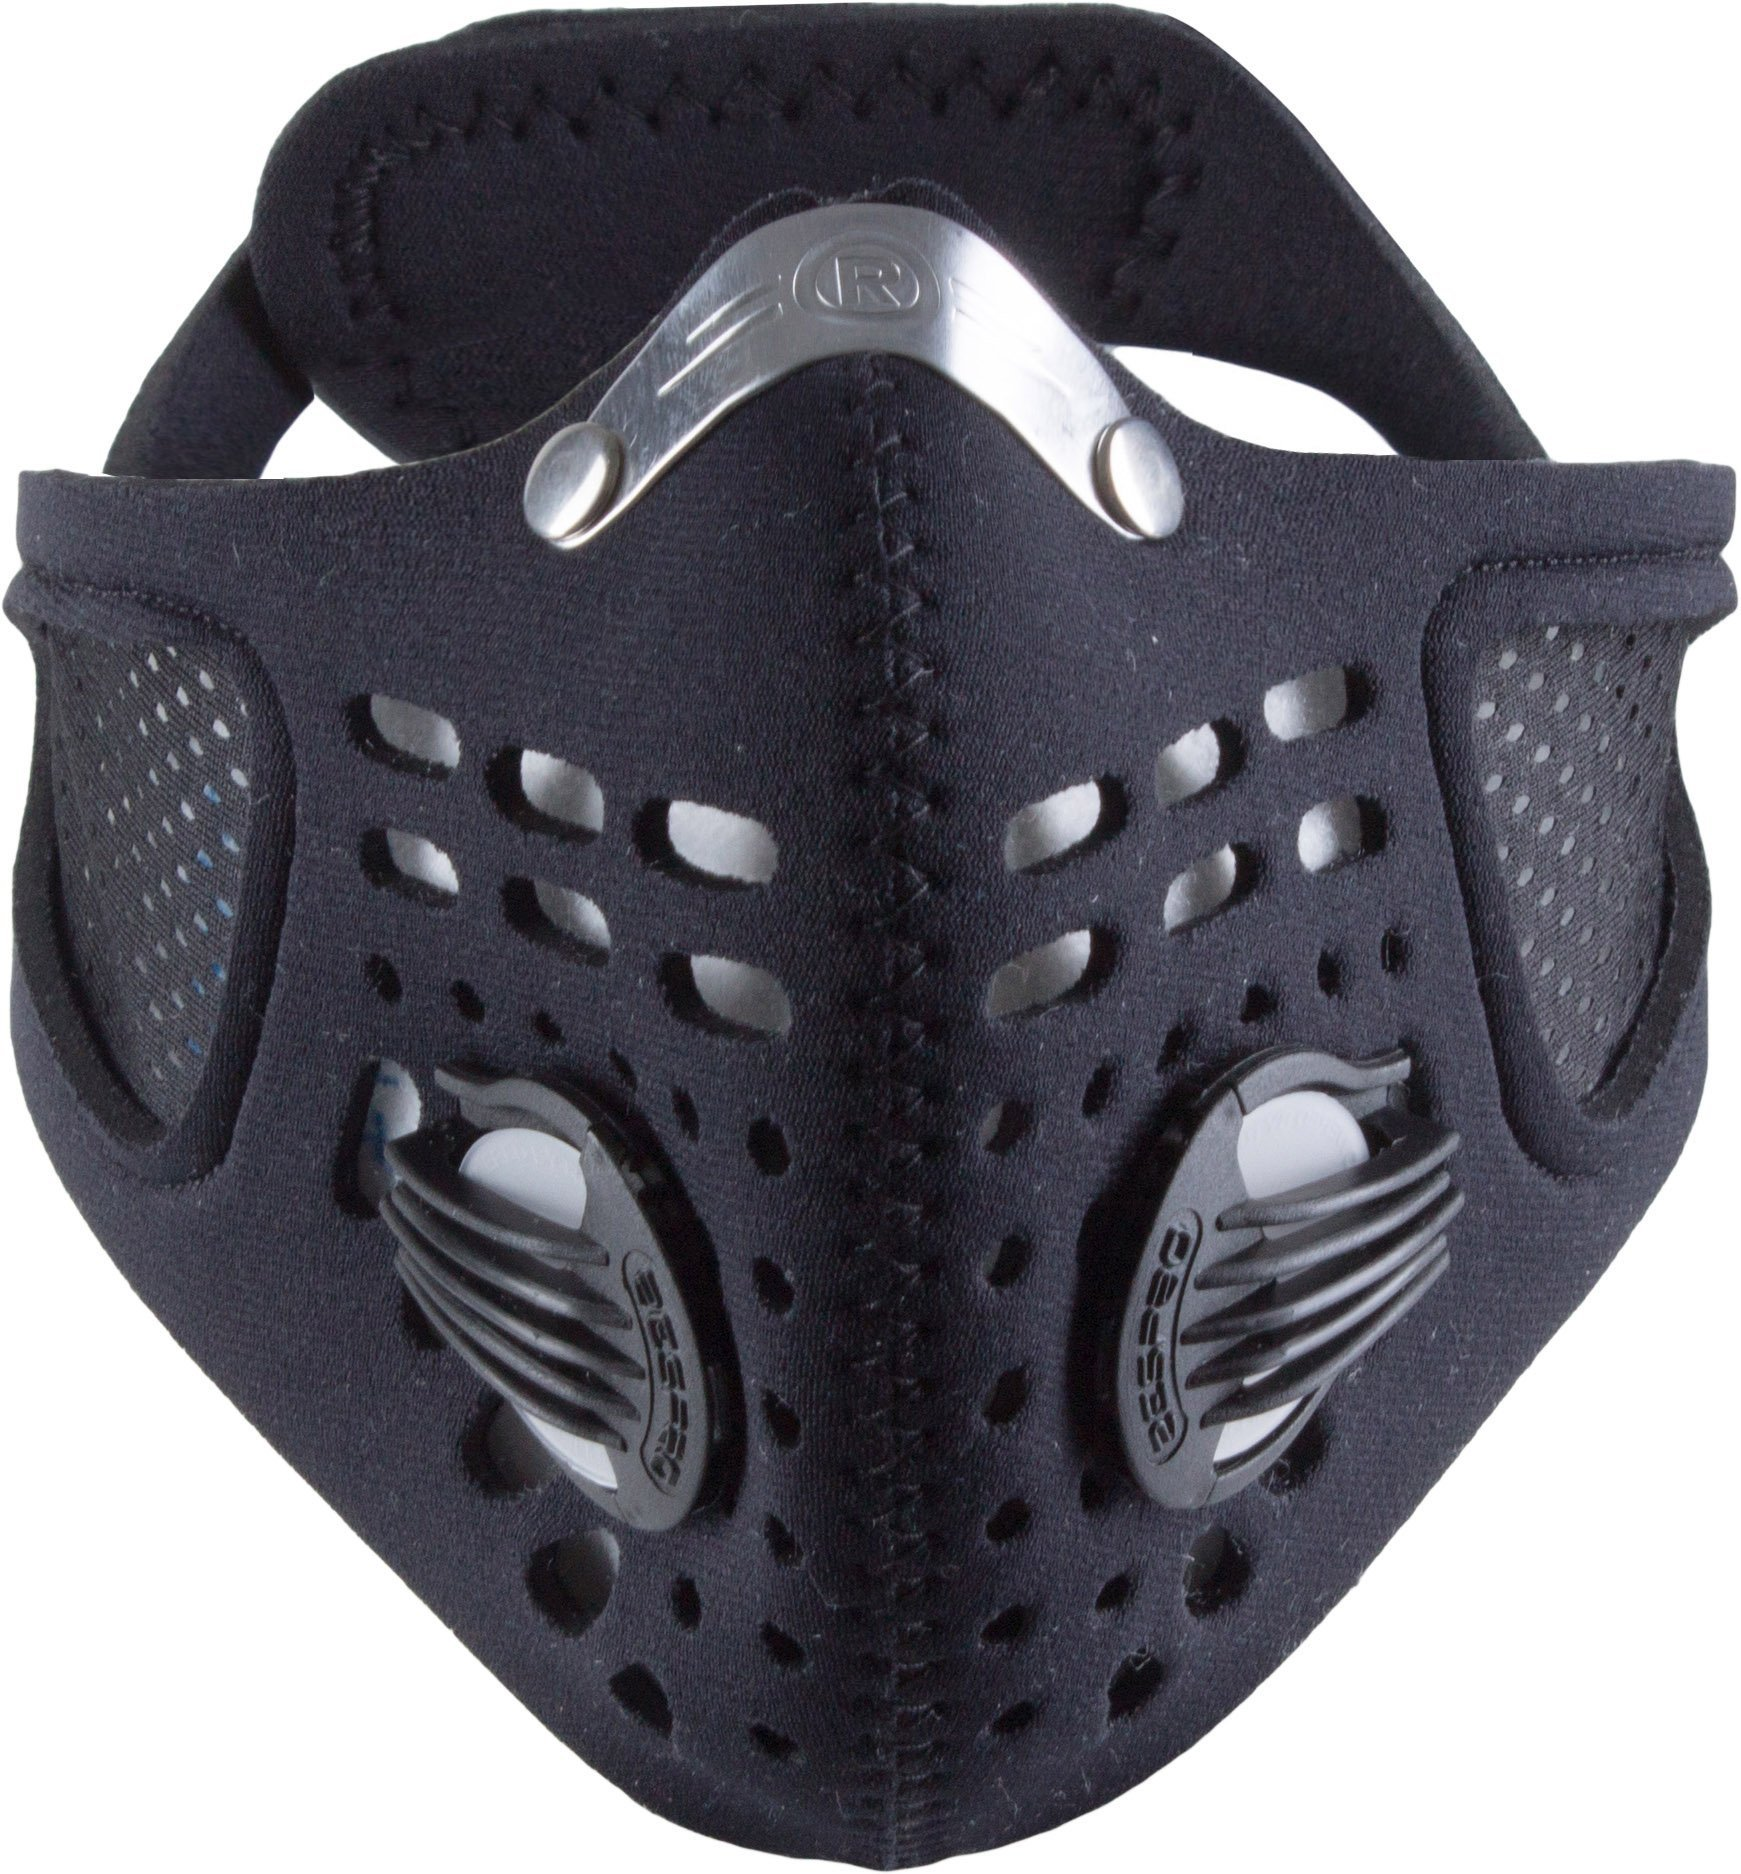 Respro Sportsta Anti-Pollution Mask - X-Large - Black by Respro